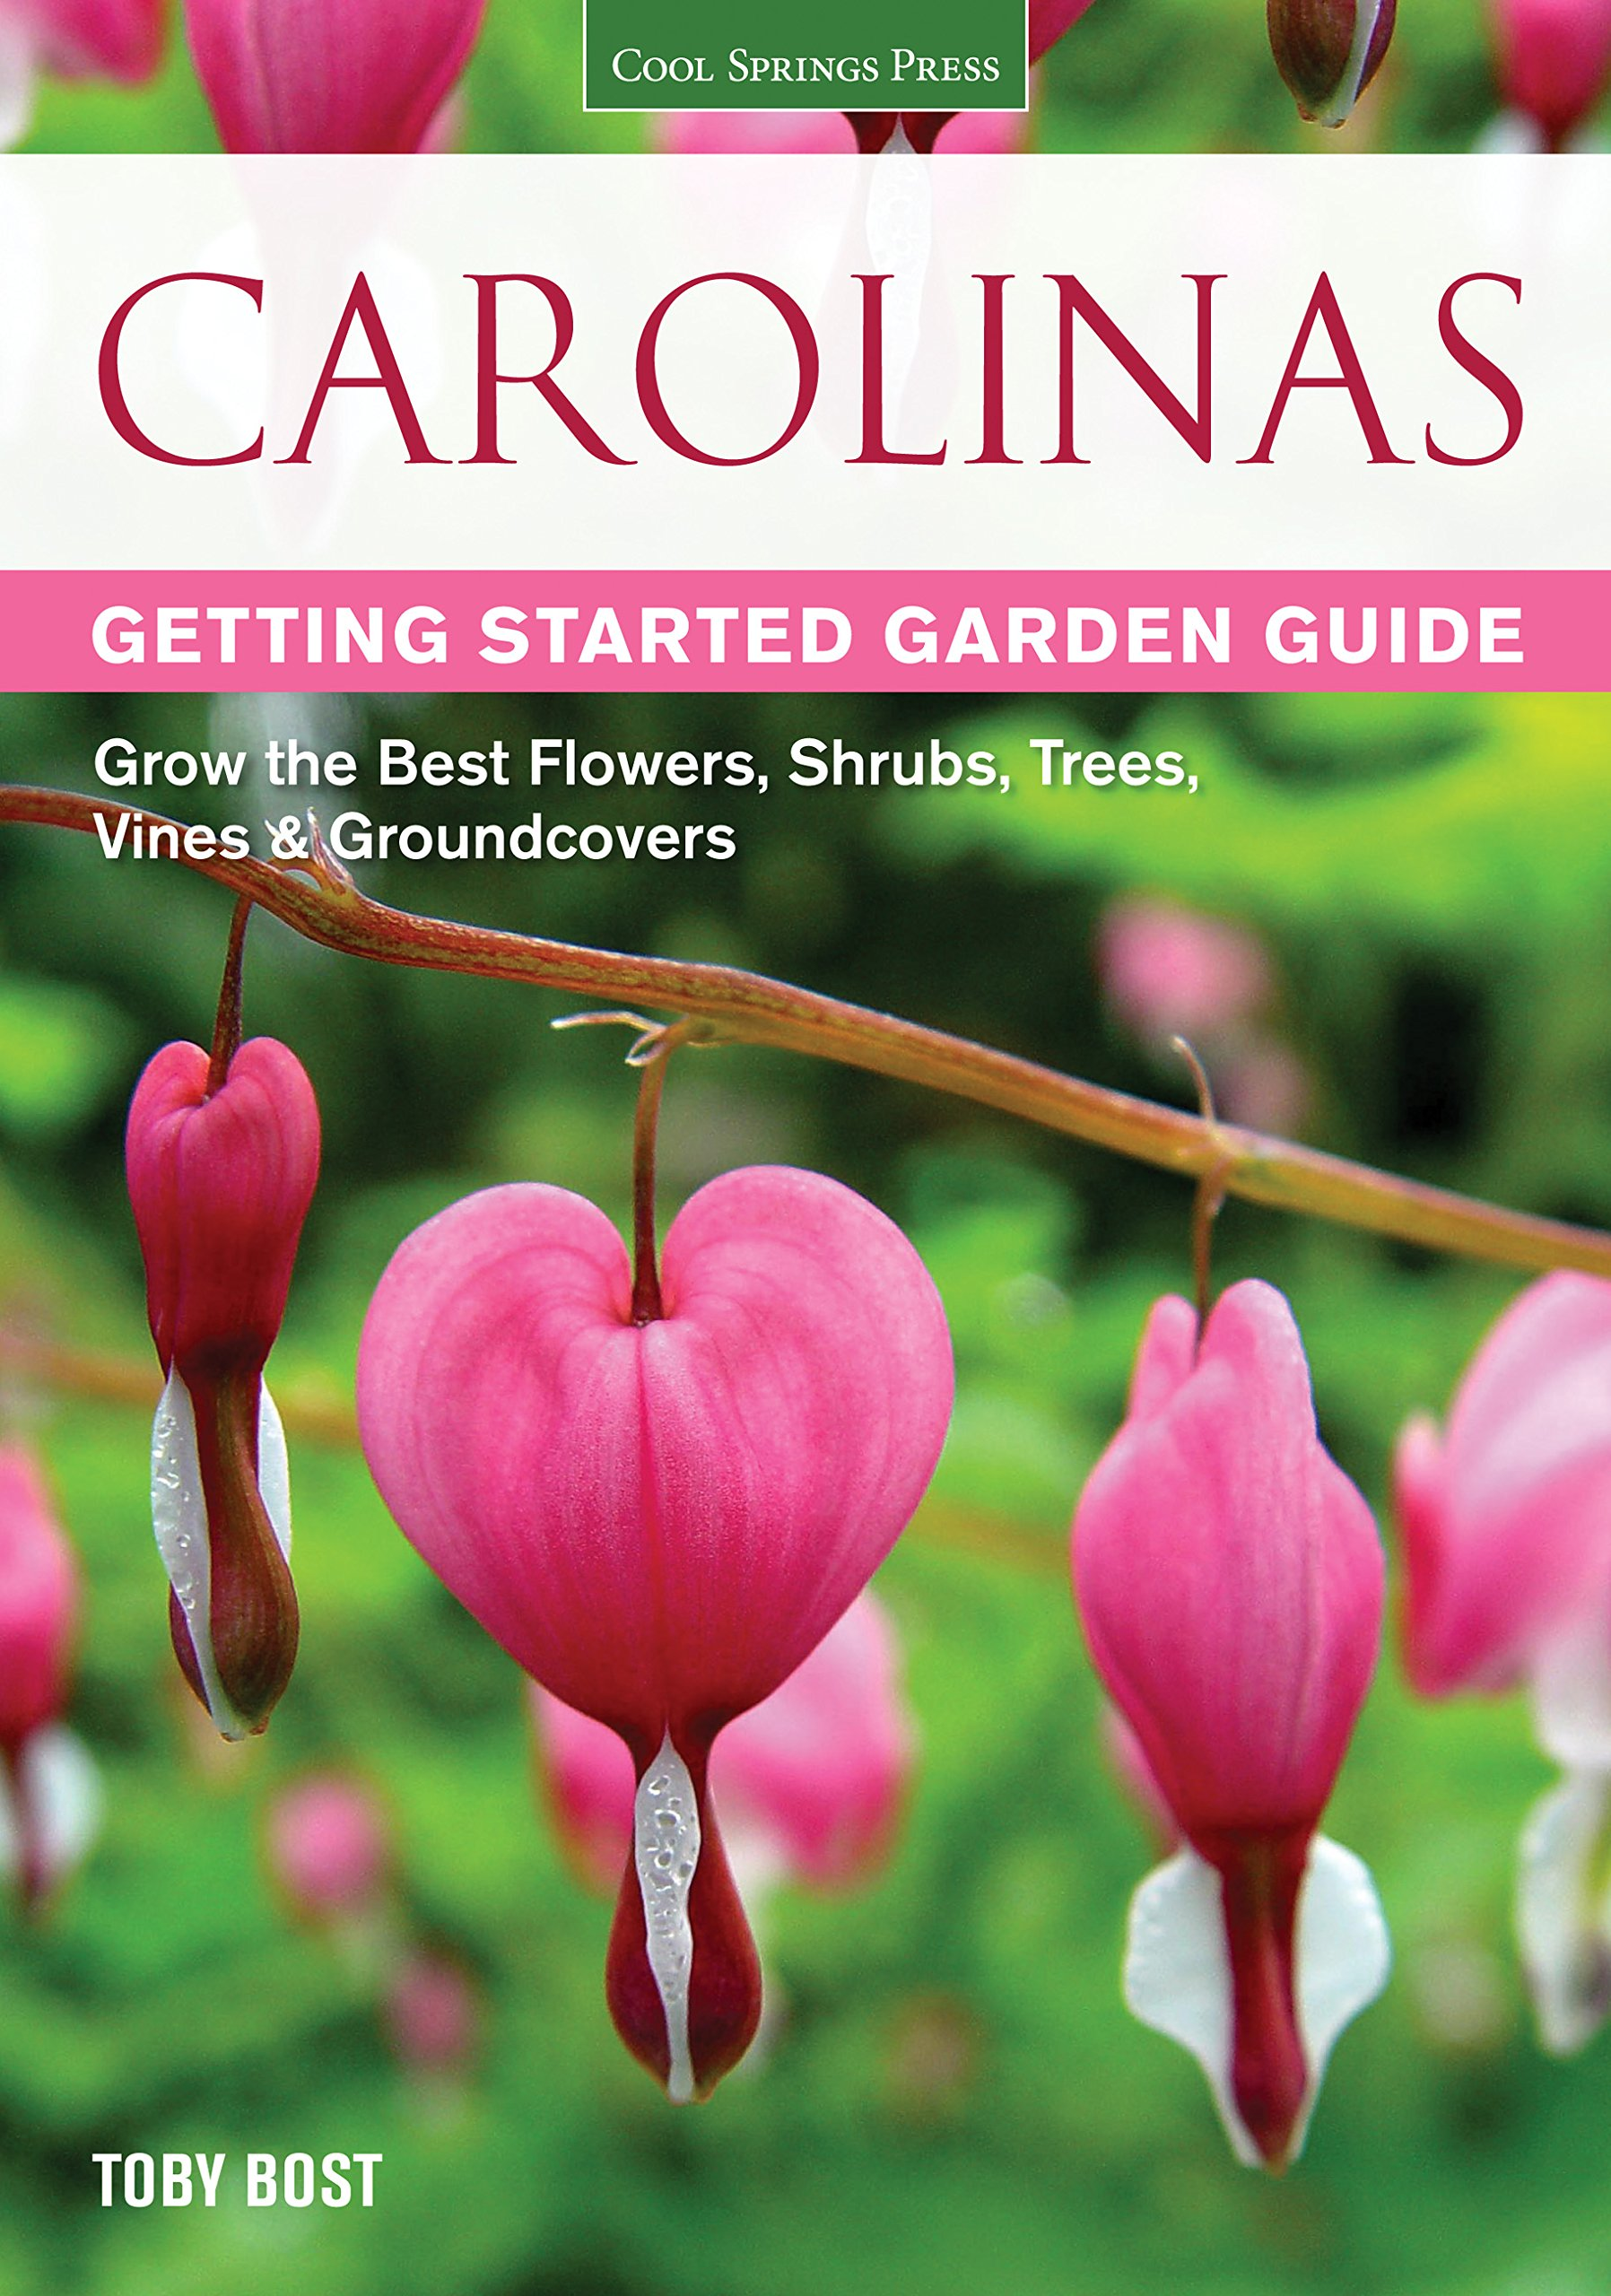 Carolinas Getting Started Garden Guide: Grow the Best Flowers, Shrubs, Trees, Vines & Groundcovers (Garden Guides) by Cool Springs Press